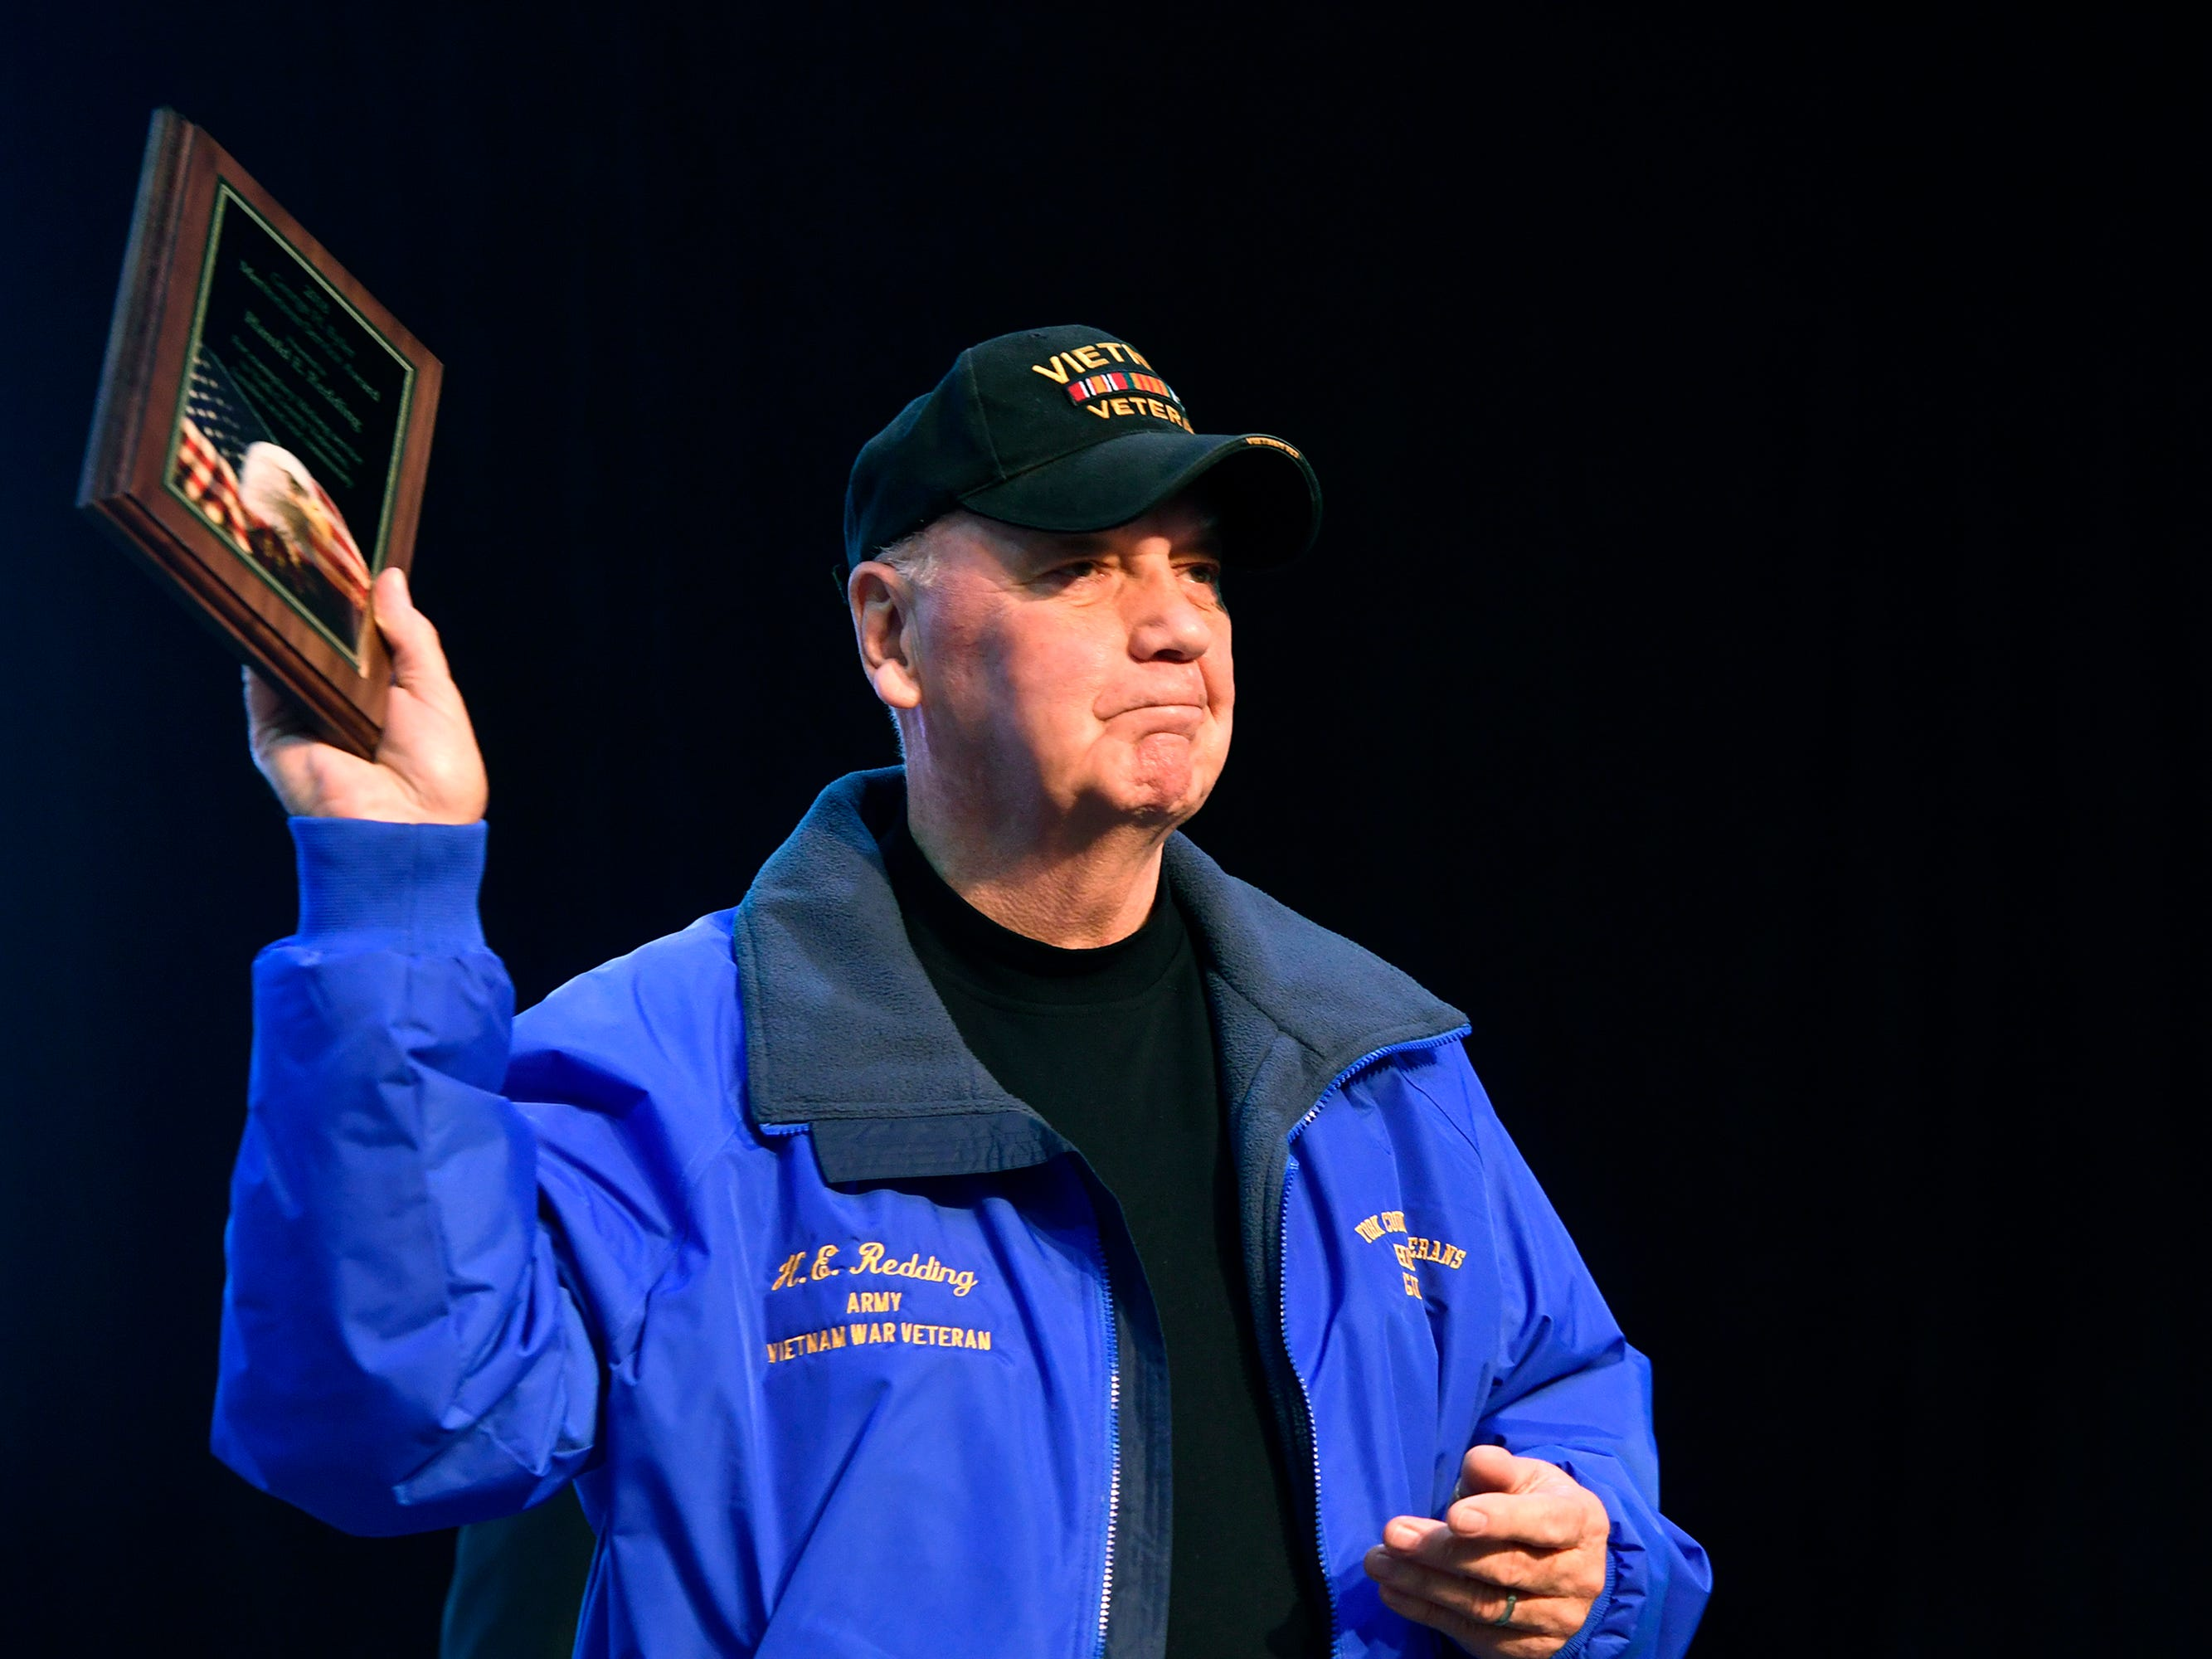 Vietnam veteran Harold Redding holds up his George H. Eyler Meritorious Service Award during the 2018 York County Veterans Day Celebration, Sunday, November 11, 2018. Redding was honored for his tireless service to veterans and particularly his efforts for the official recognition of National Vietnam Veterans Day.John A. Pavoncello photo